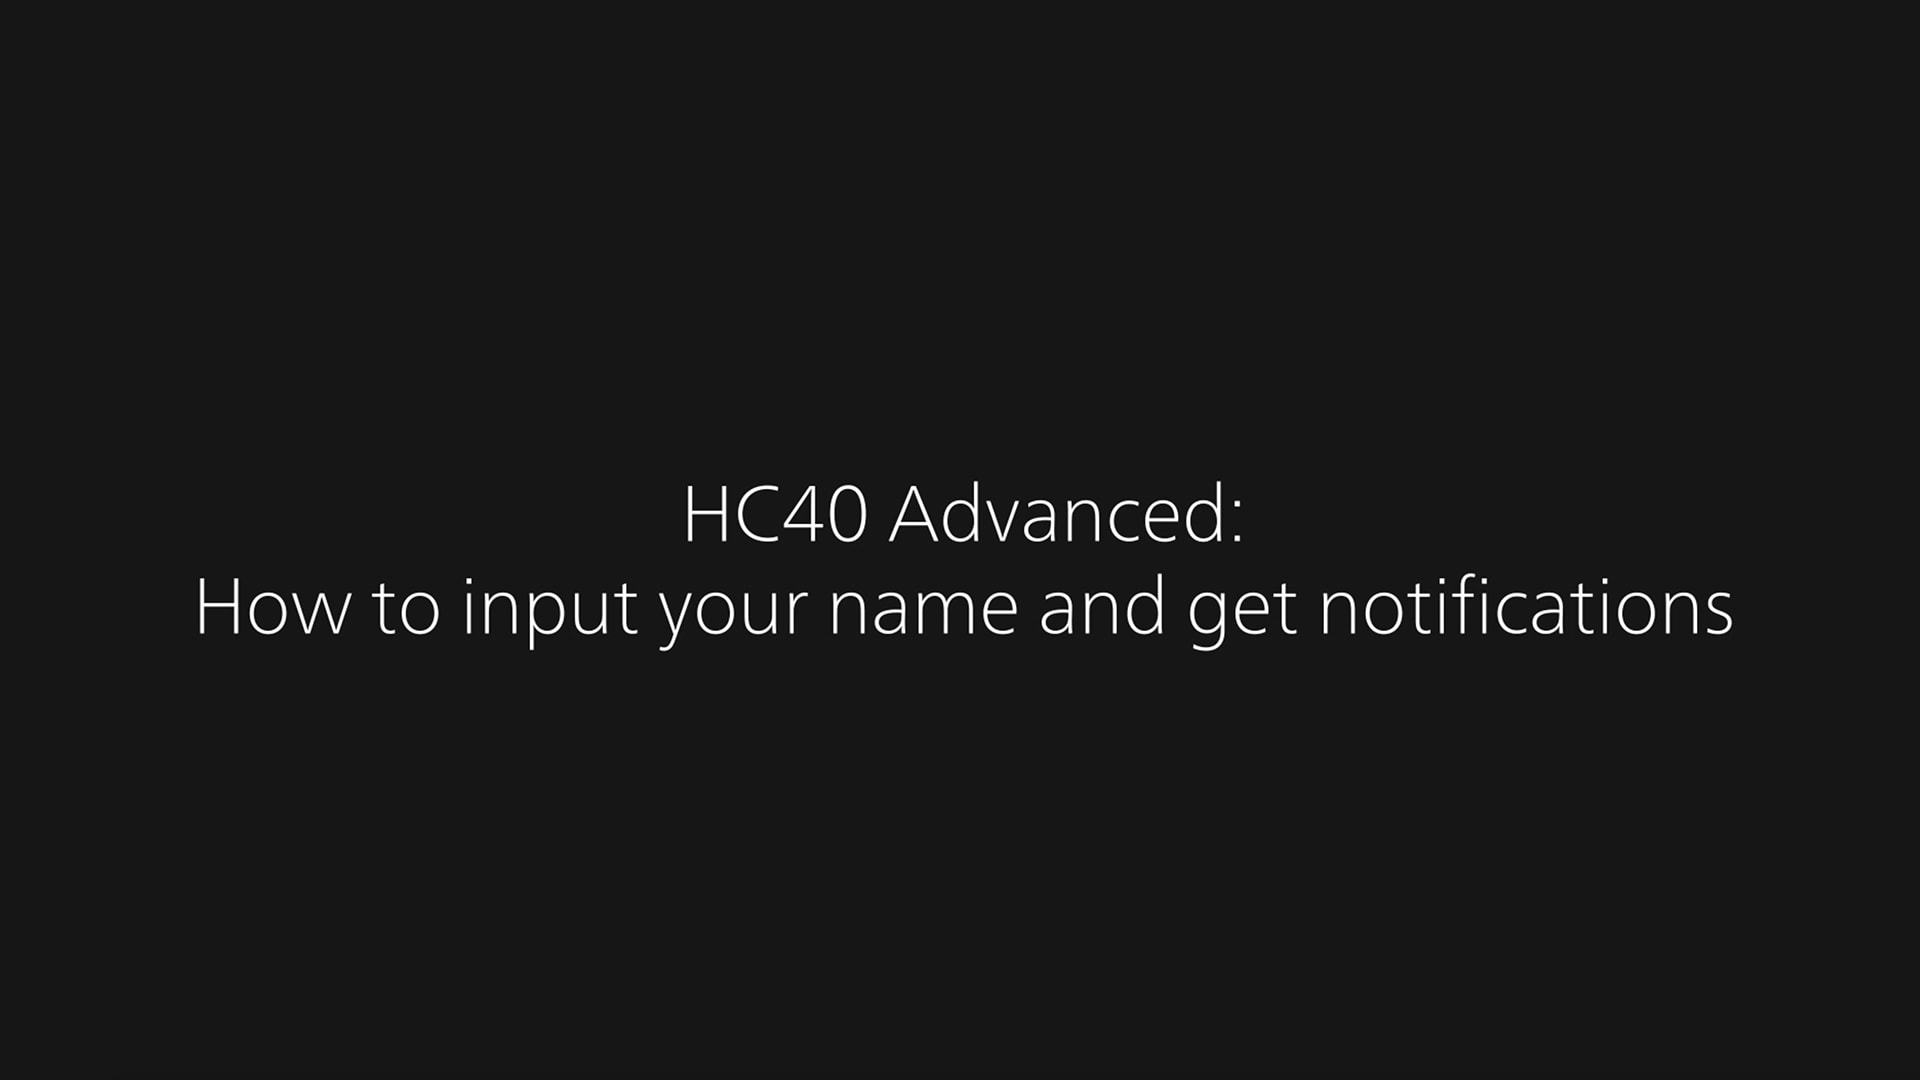 HC40 Advanced: How to input your name and receive notifications